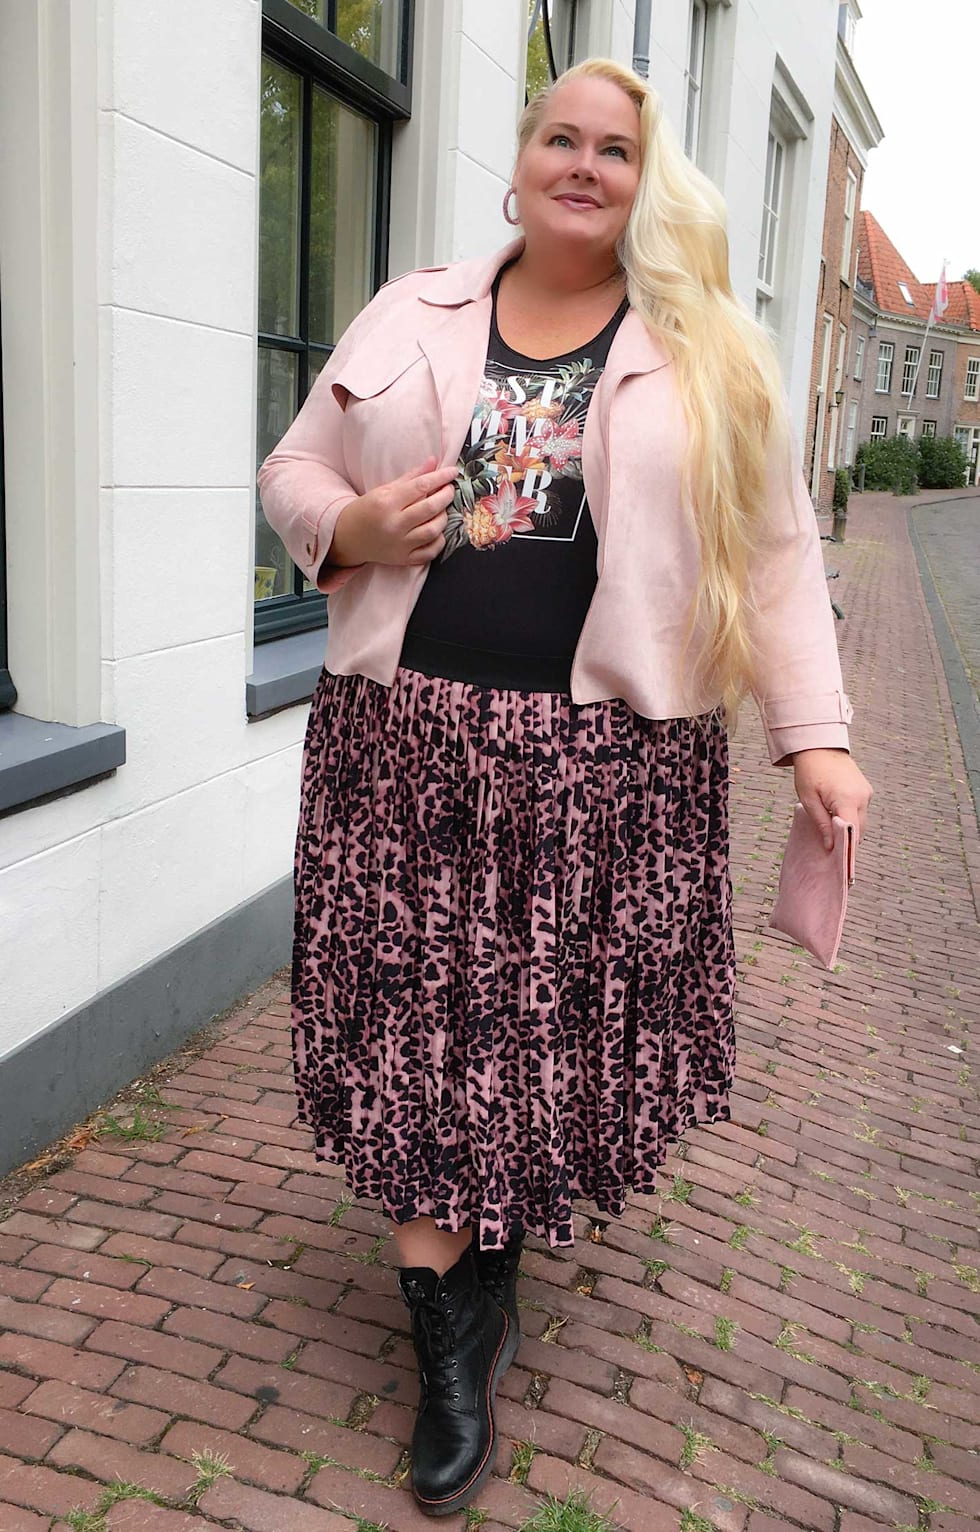 Bloggerin Annemarie